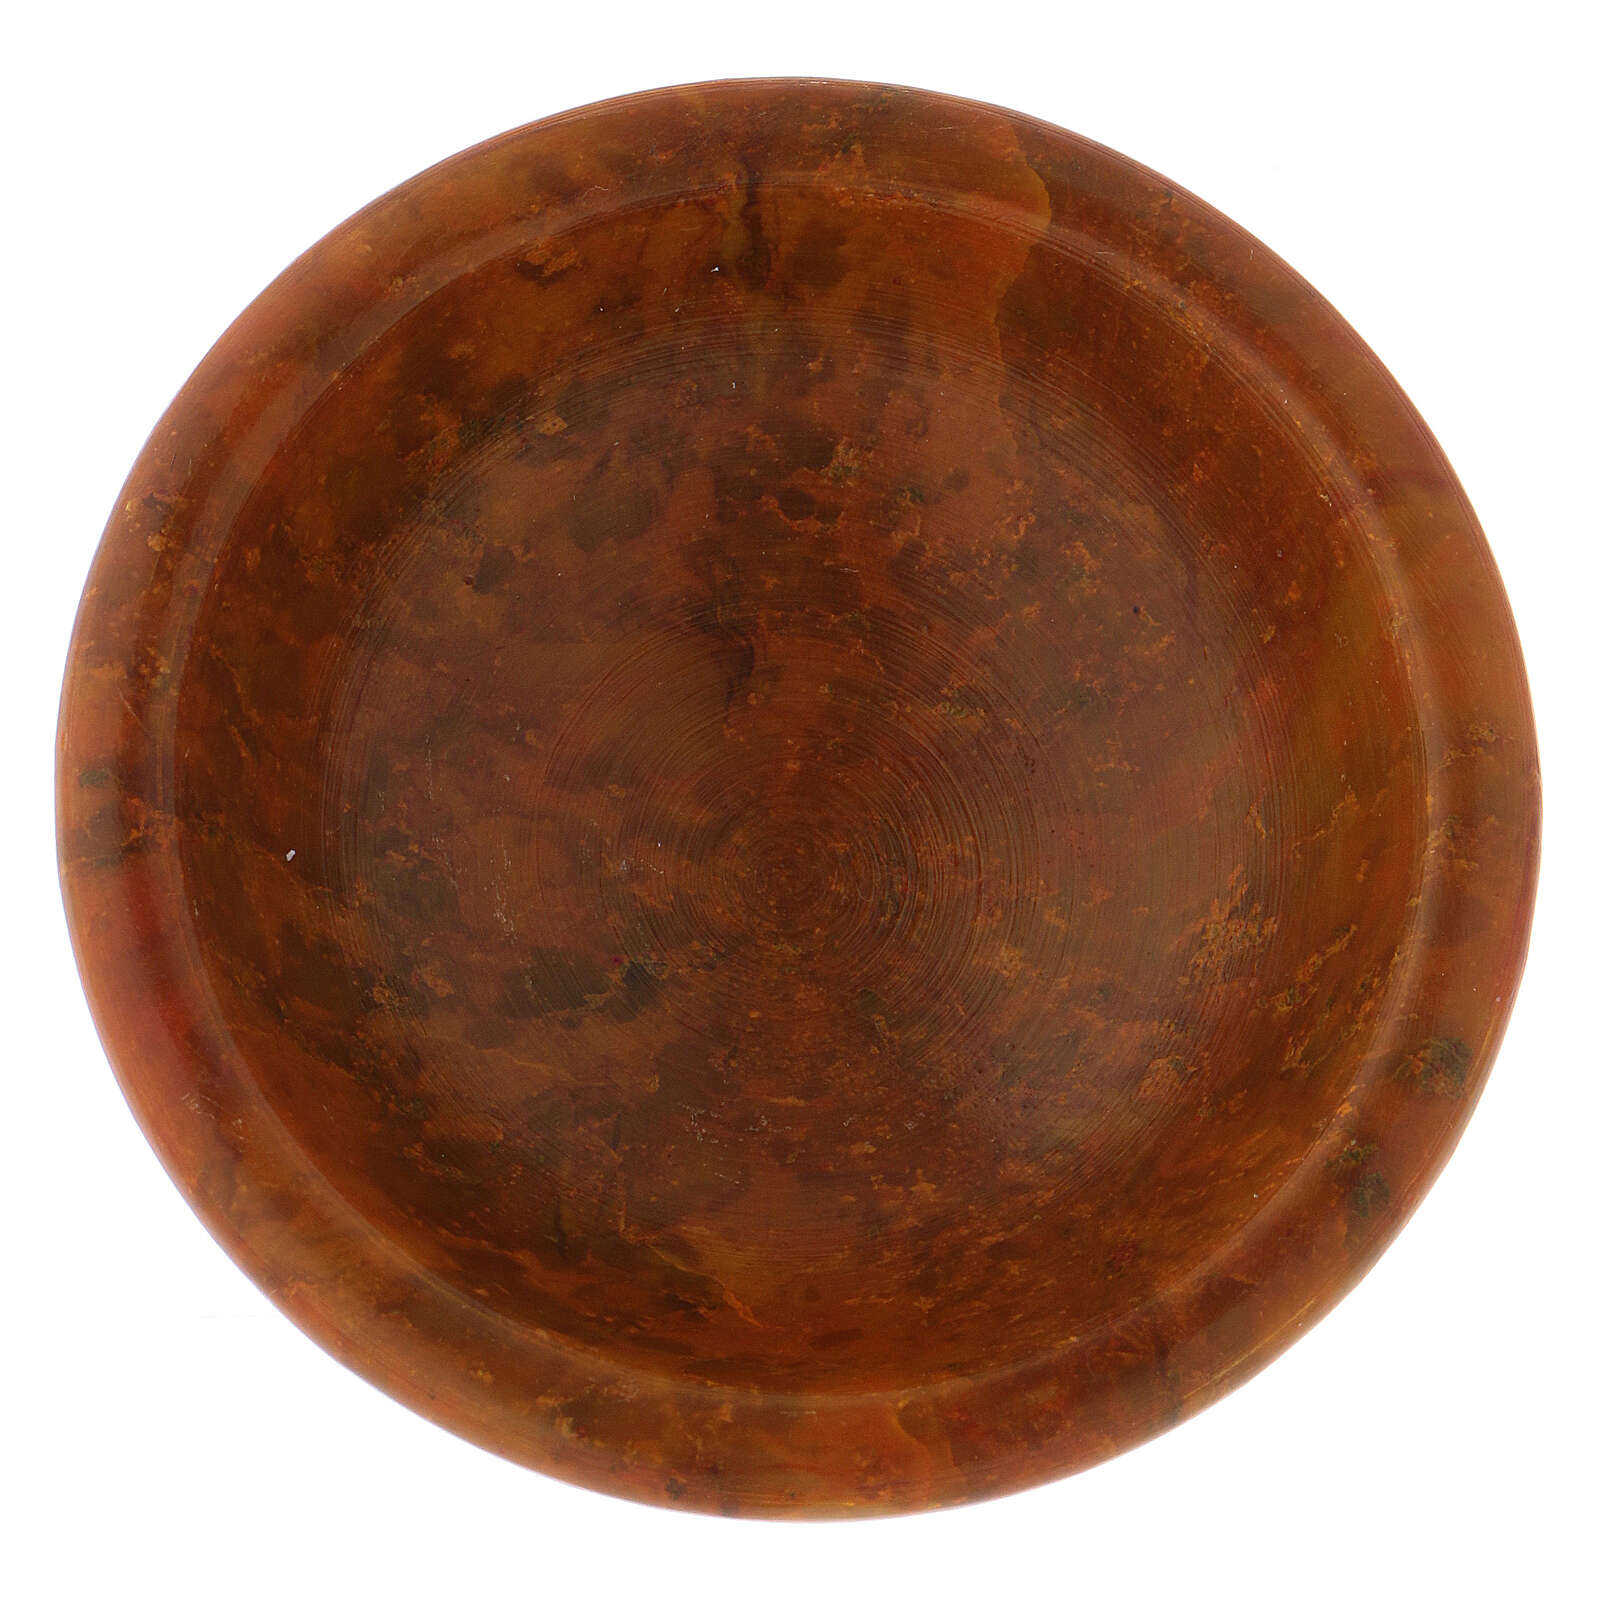 Amber-colored incense bowl diam. 3 in 3